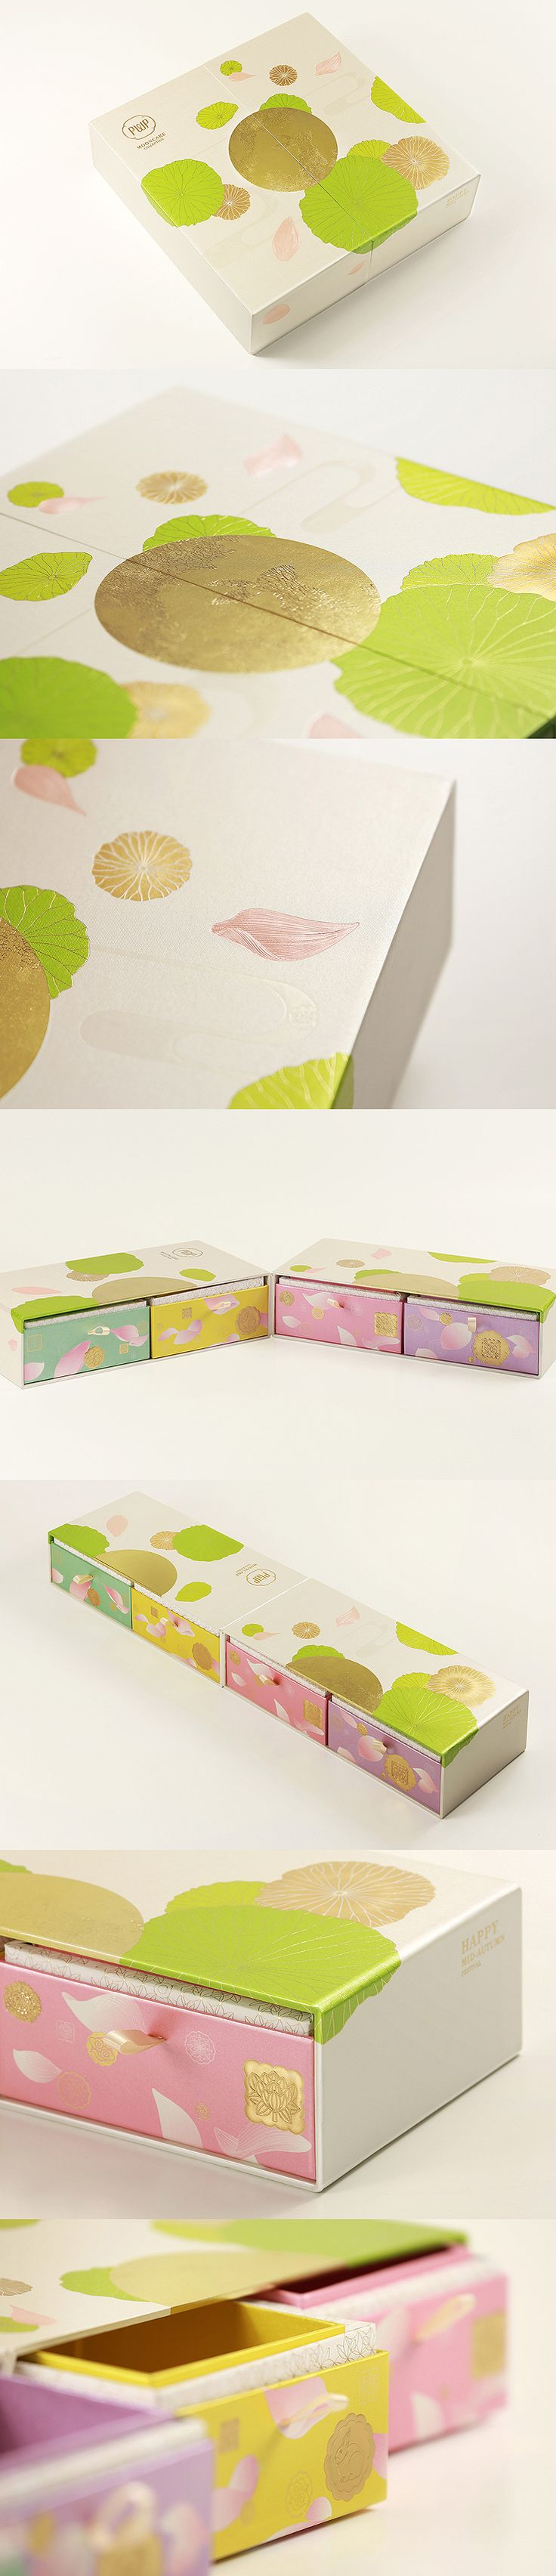 When Classic meets Modern  Engaged by Polytrade Paper, various prototypes are designed. This prototype of traditional mooncakes gift box combines all classical elements of the festival like Jade Rabbit, full moon and lotus, in a stylish presentation. It is designed as an antique Chinese chest but in modern appearance, making the festival and its traditions contemporary and classy.